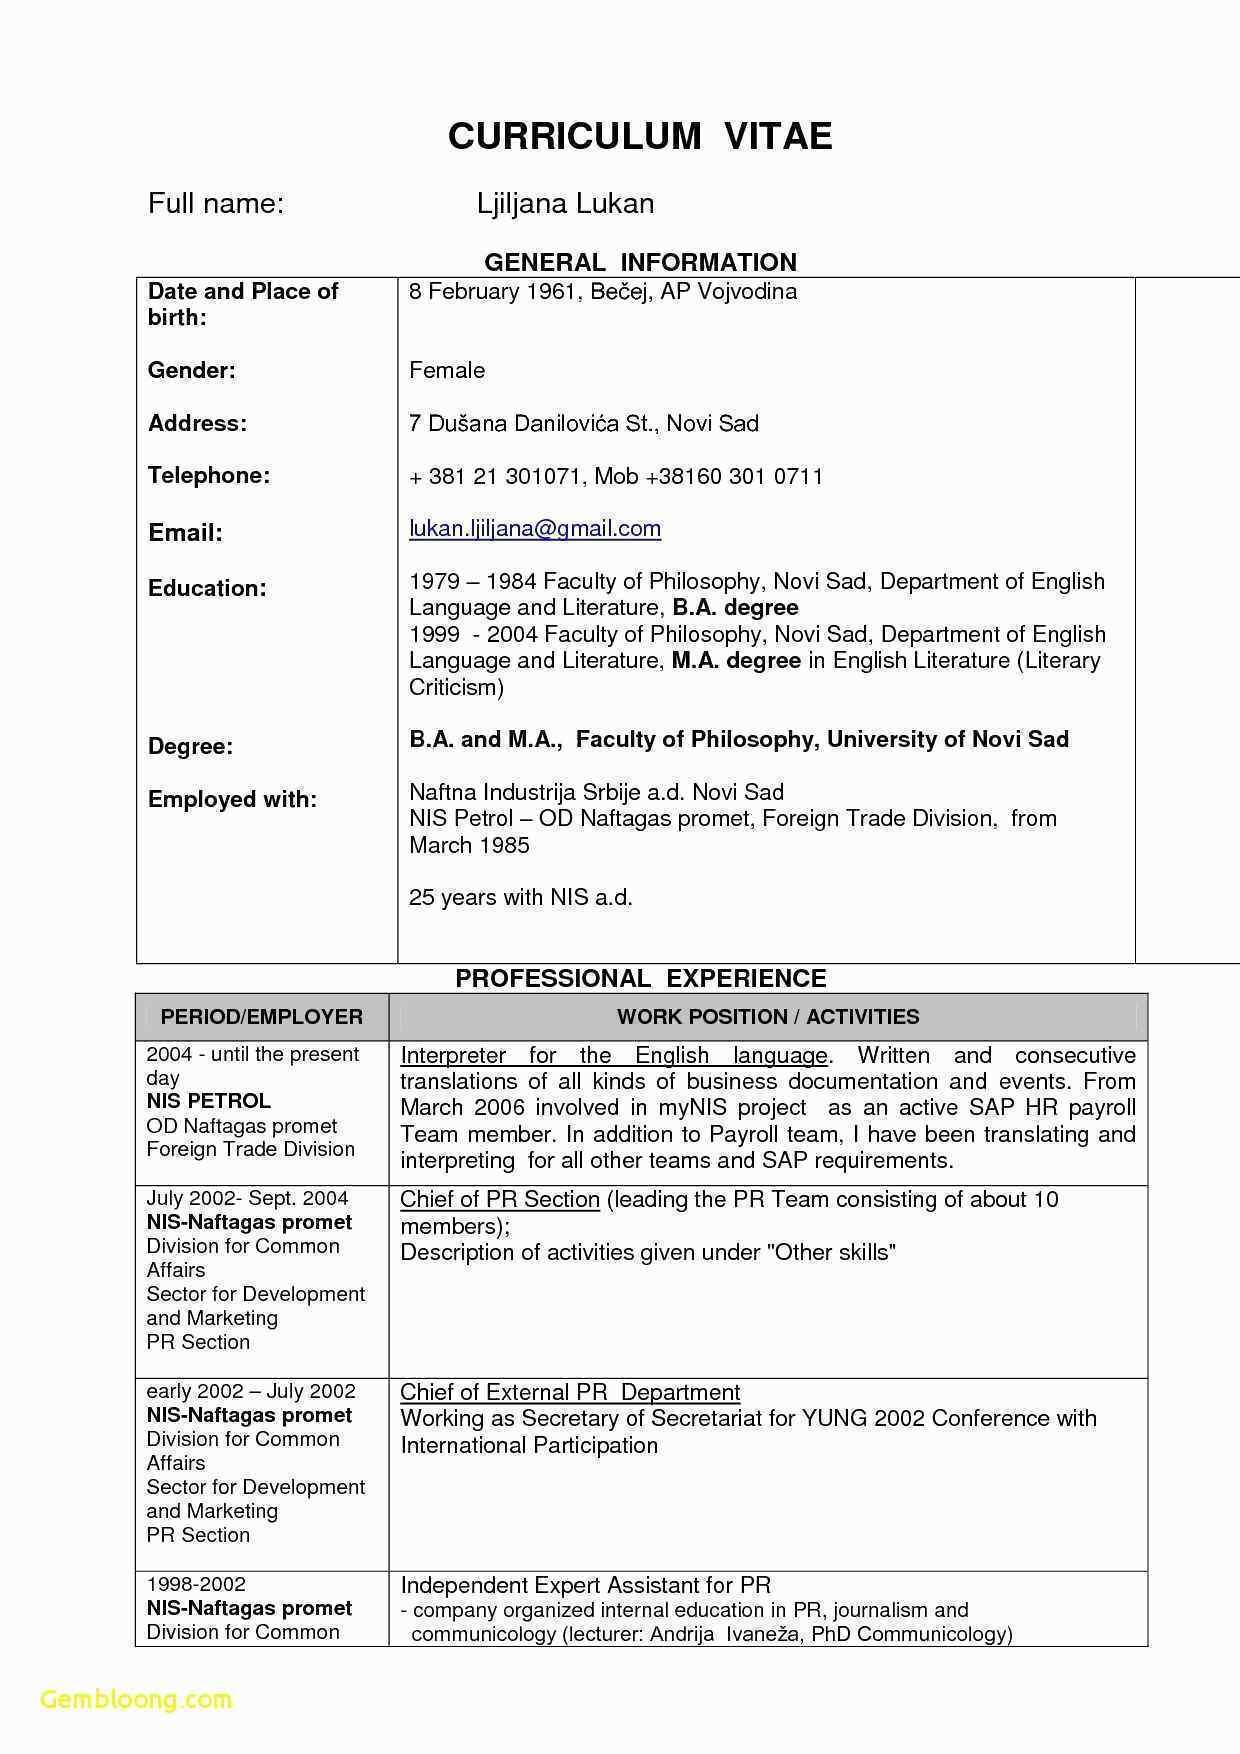 Law School Application Resume - Law School Application Resume – Resume Example for A Job 2018